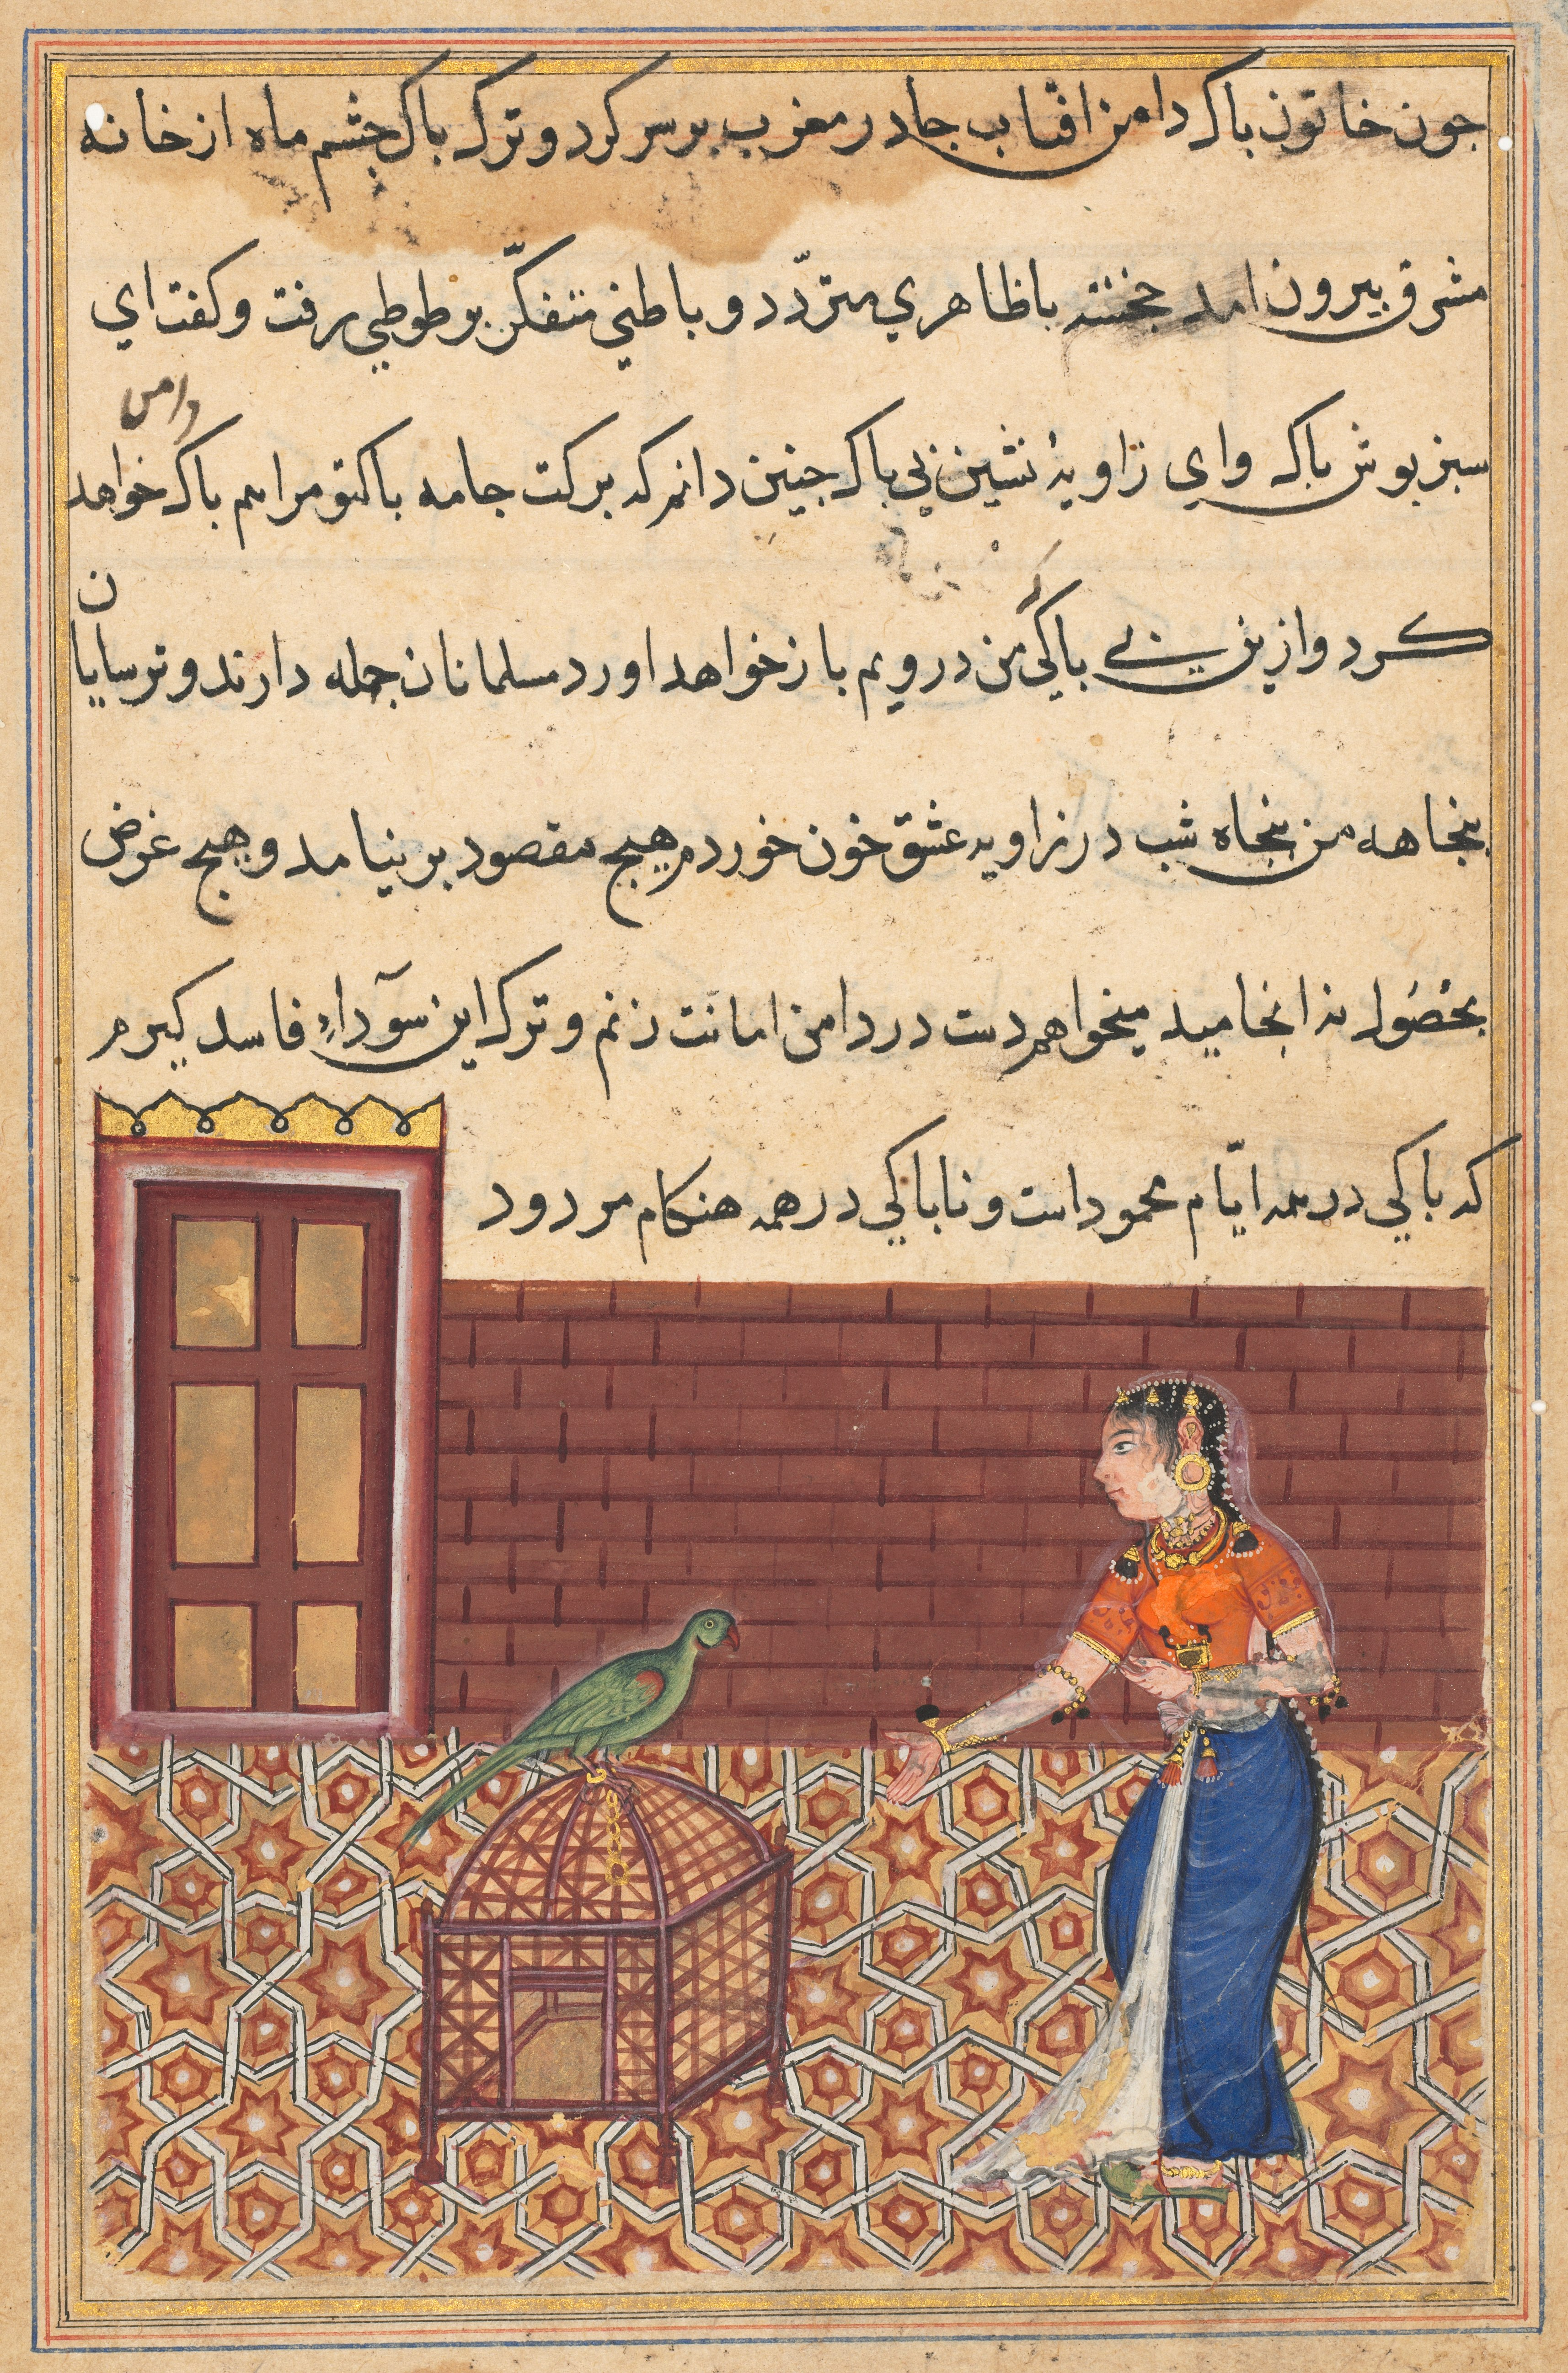 Page from Tales of a Parrot (Tuti-nama): Fifty-first night: The parrot addresses Khujasta at the beginning of the fifty-first night